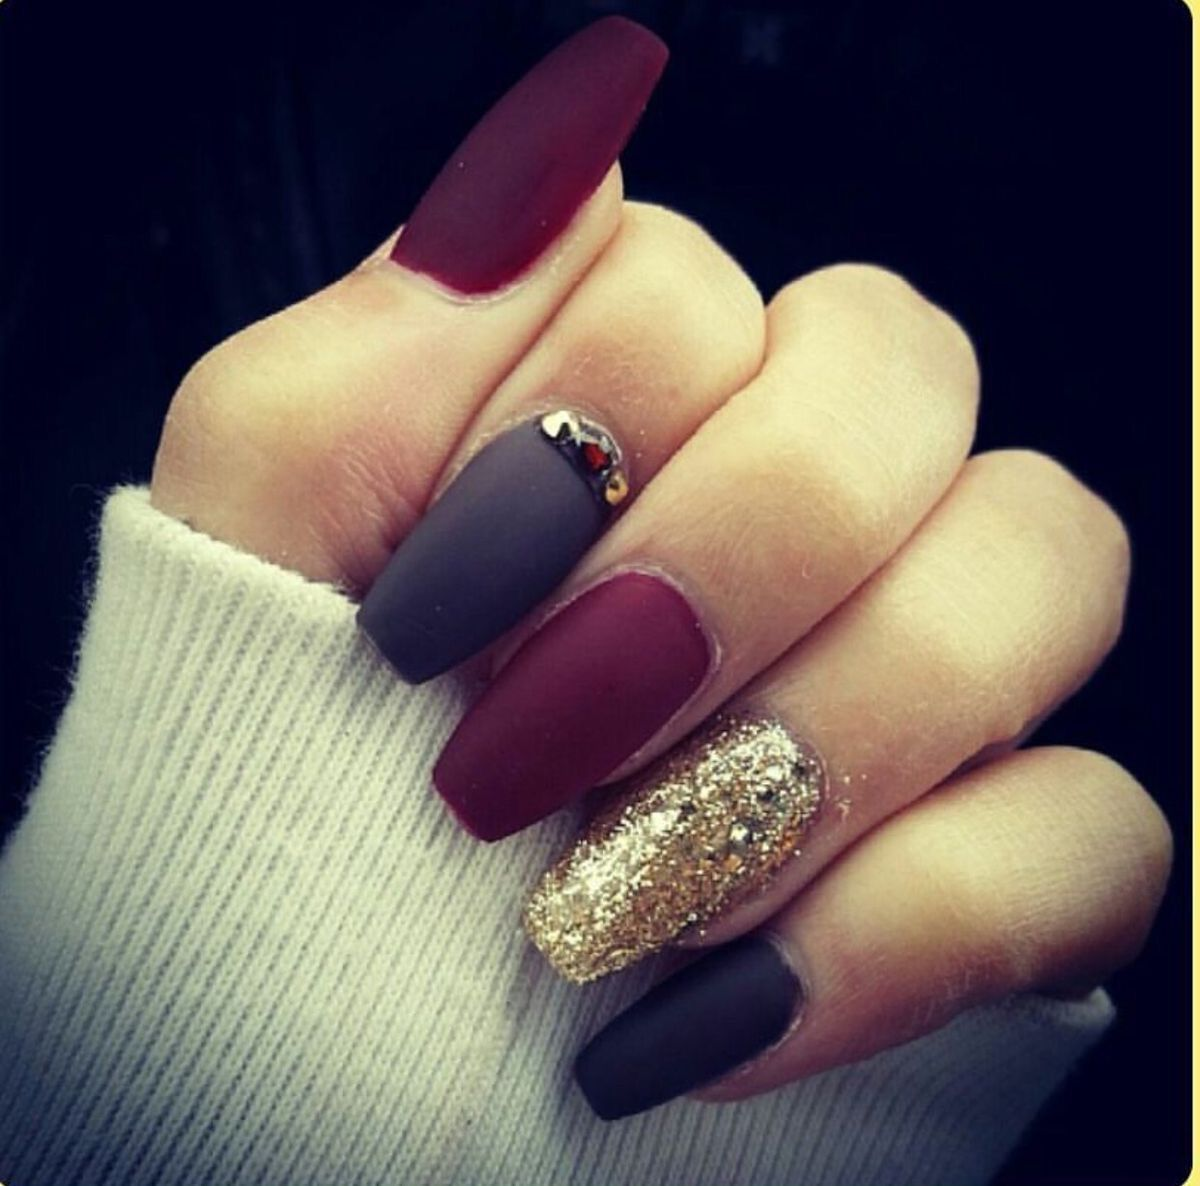 amazing nail art designs for 2016 Related PostsNice easy nail art designs  art designs trends for Nails Art Design Ideas best nail art ideas for art  top 10 ... - Pin By Michelle Morrissey On Nails I Do Pinterest Manicure